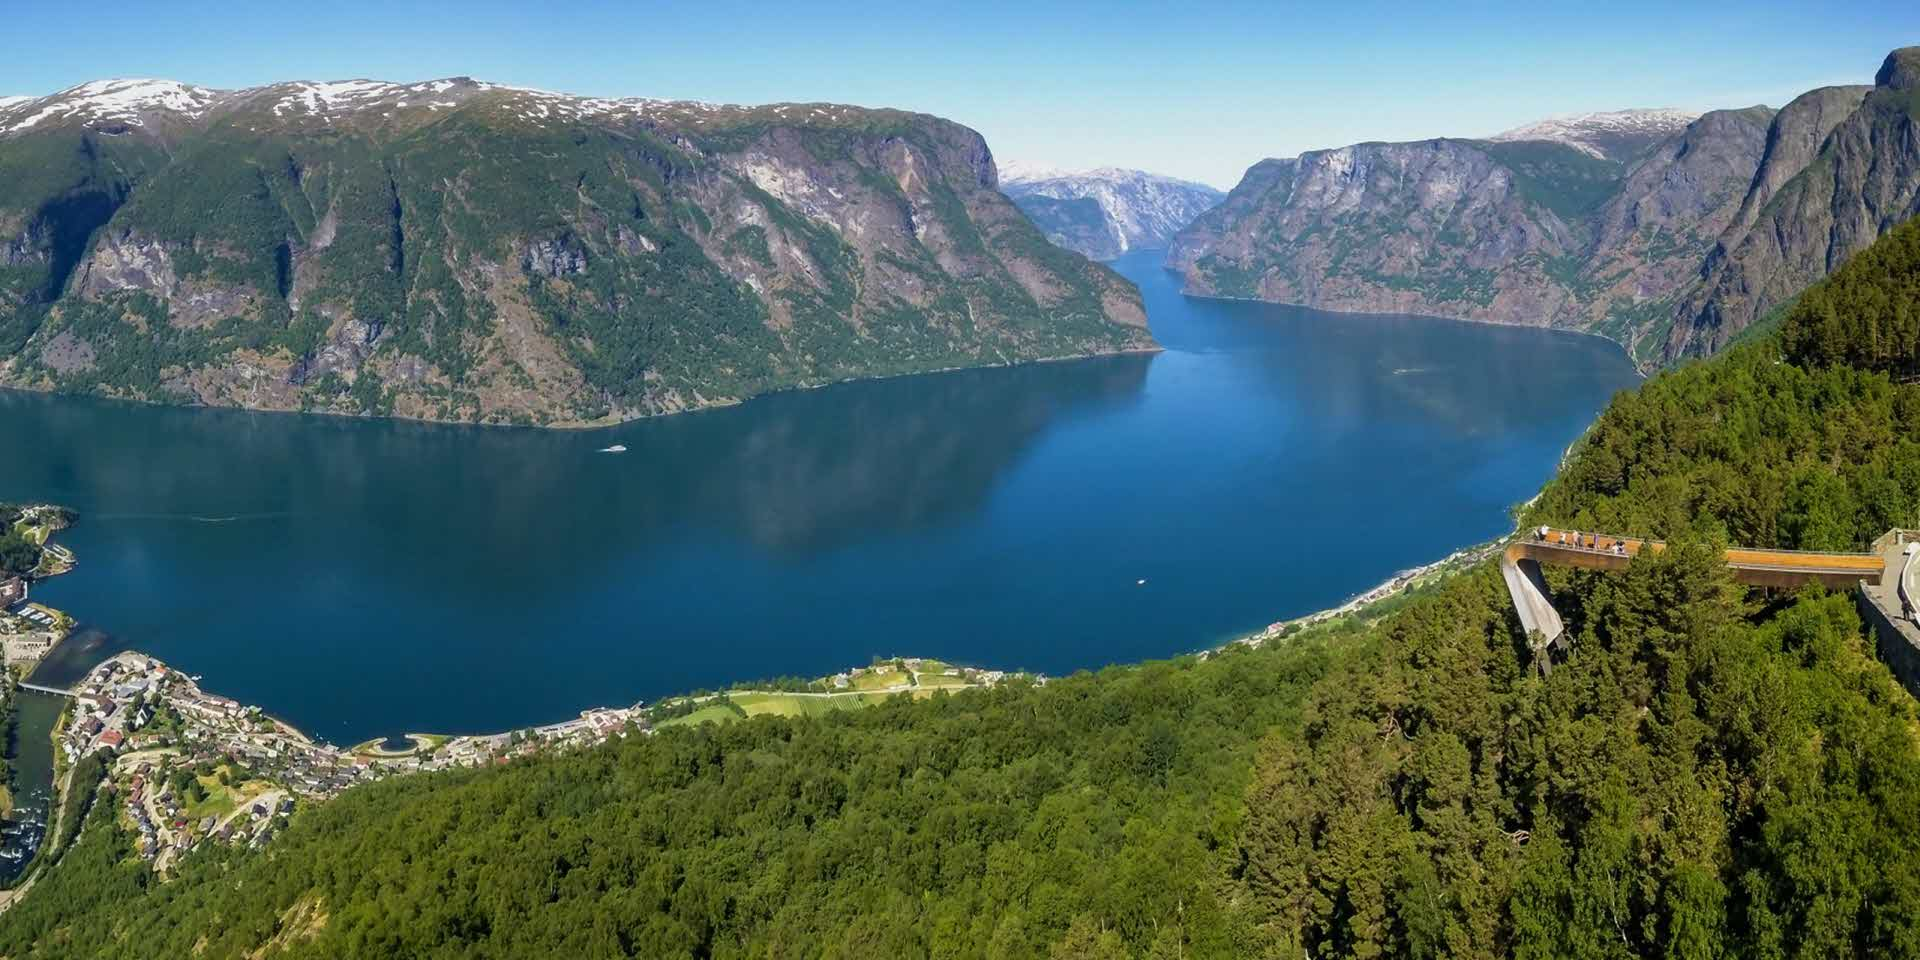 Panorama of Aurlandfjord in summer. Stegastein Viewpoint seen from above with people overlooking the unesco listed fjord